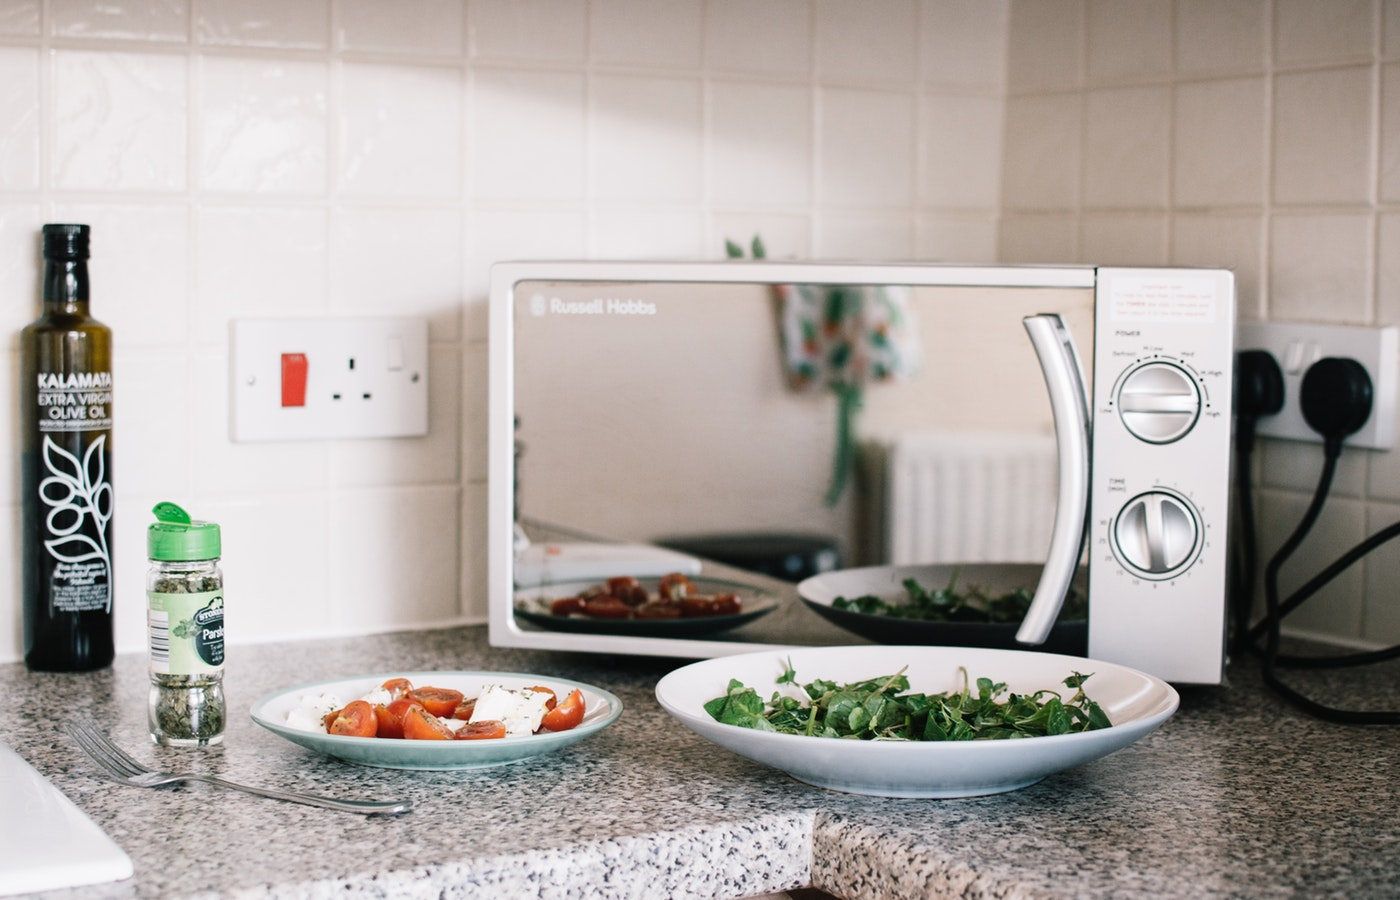 Microwave on a counter